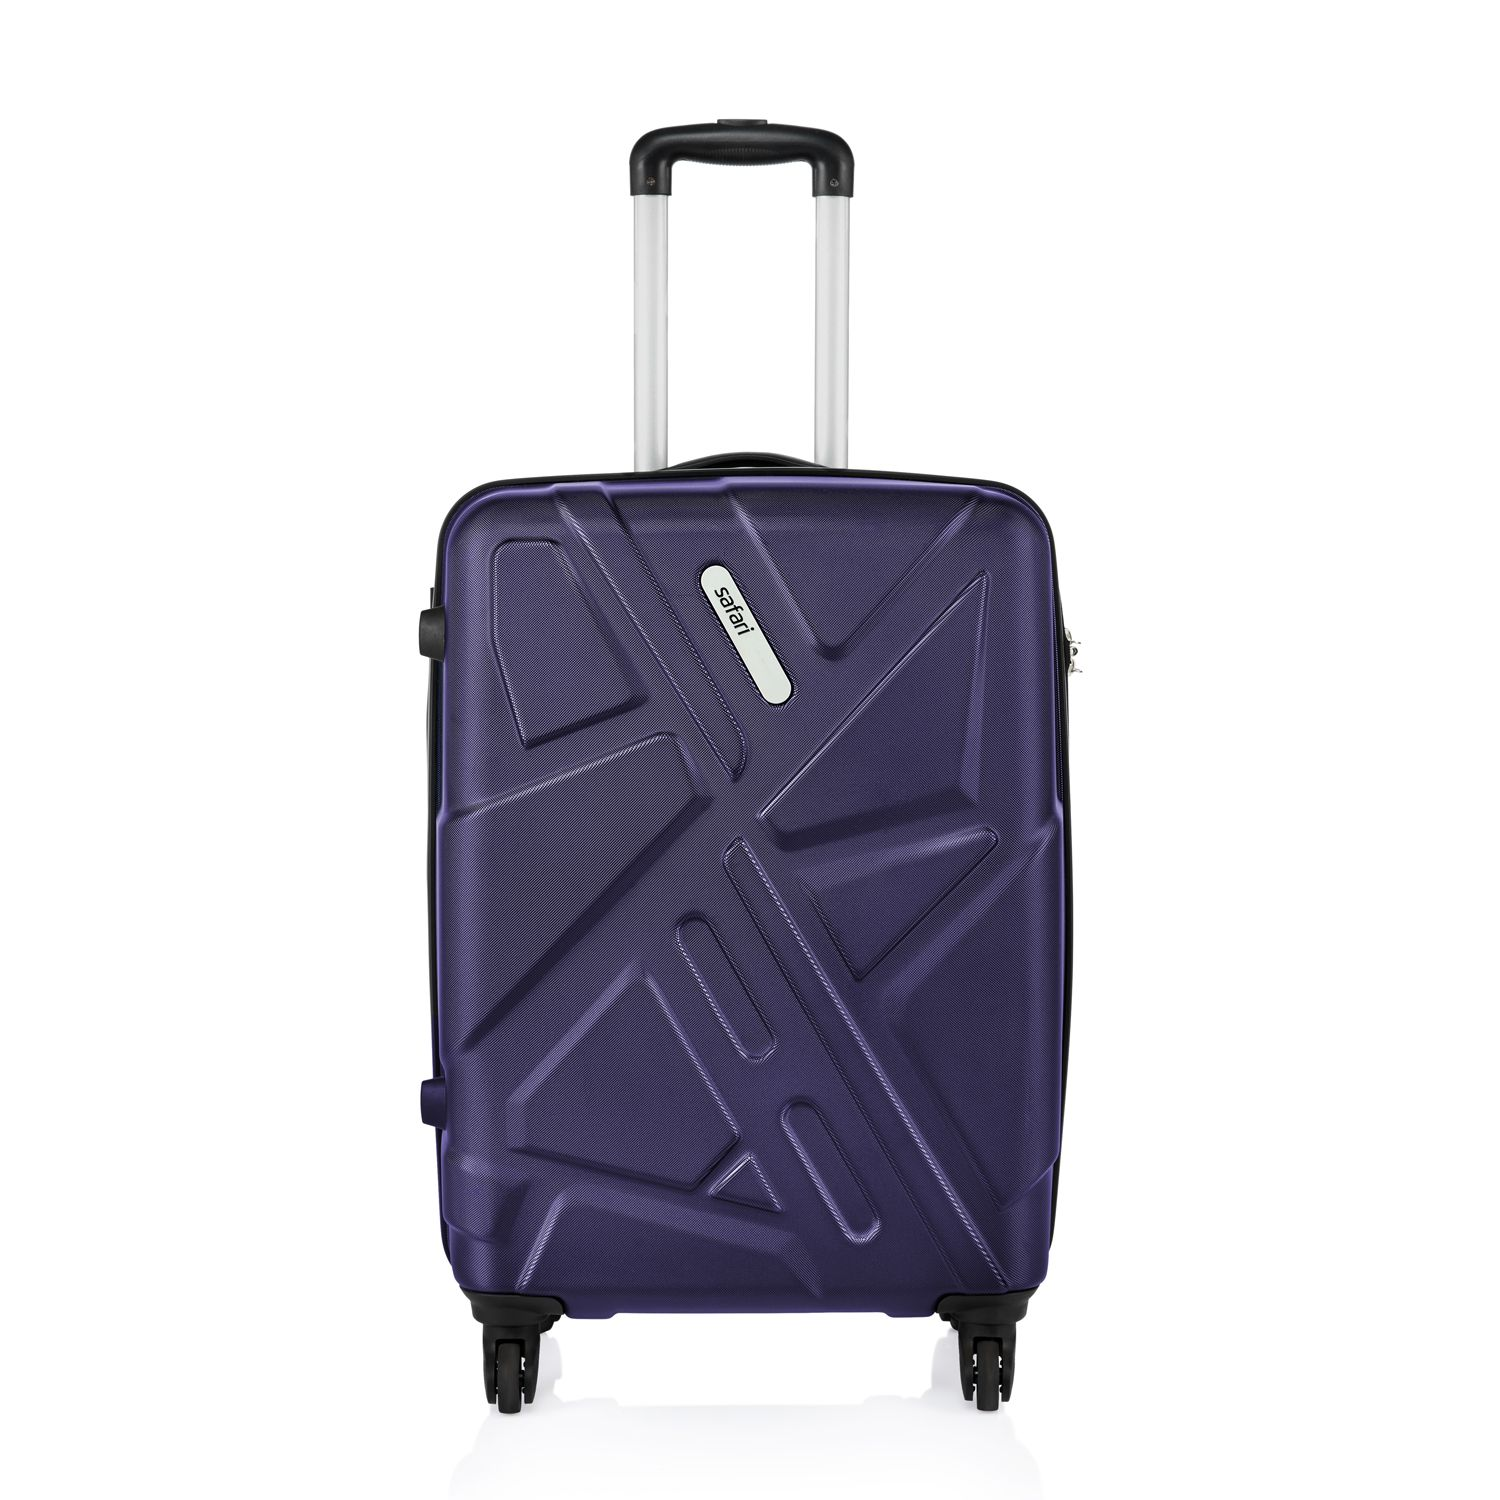 Get Going!! Upto 55% Off On American Tourister, Skybags & More By Snapdeal | Safari Traffik-Anti Scratch Purple 4 Wheel Hard Luggage-Size Medium (Between 61 Cm-69Cm) @ Rs.3,600